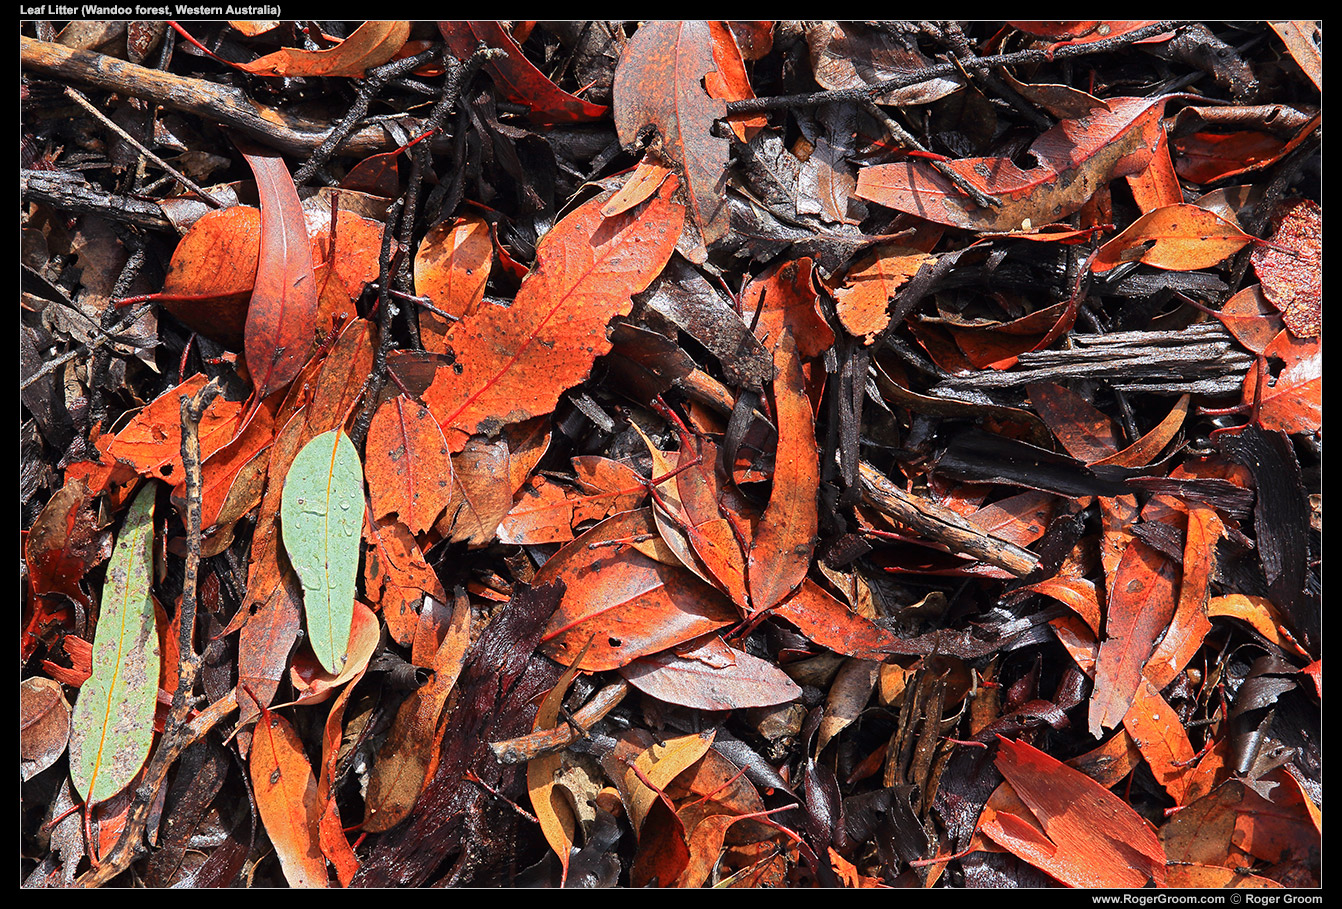 Wet leaf litter in the Wandoo forest around Mt Observation. Typical of this region of the Wheatbelt in Western Australia.